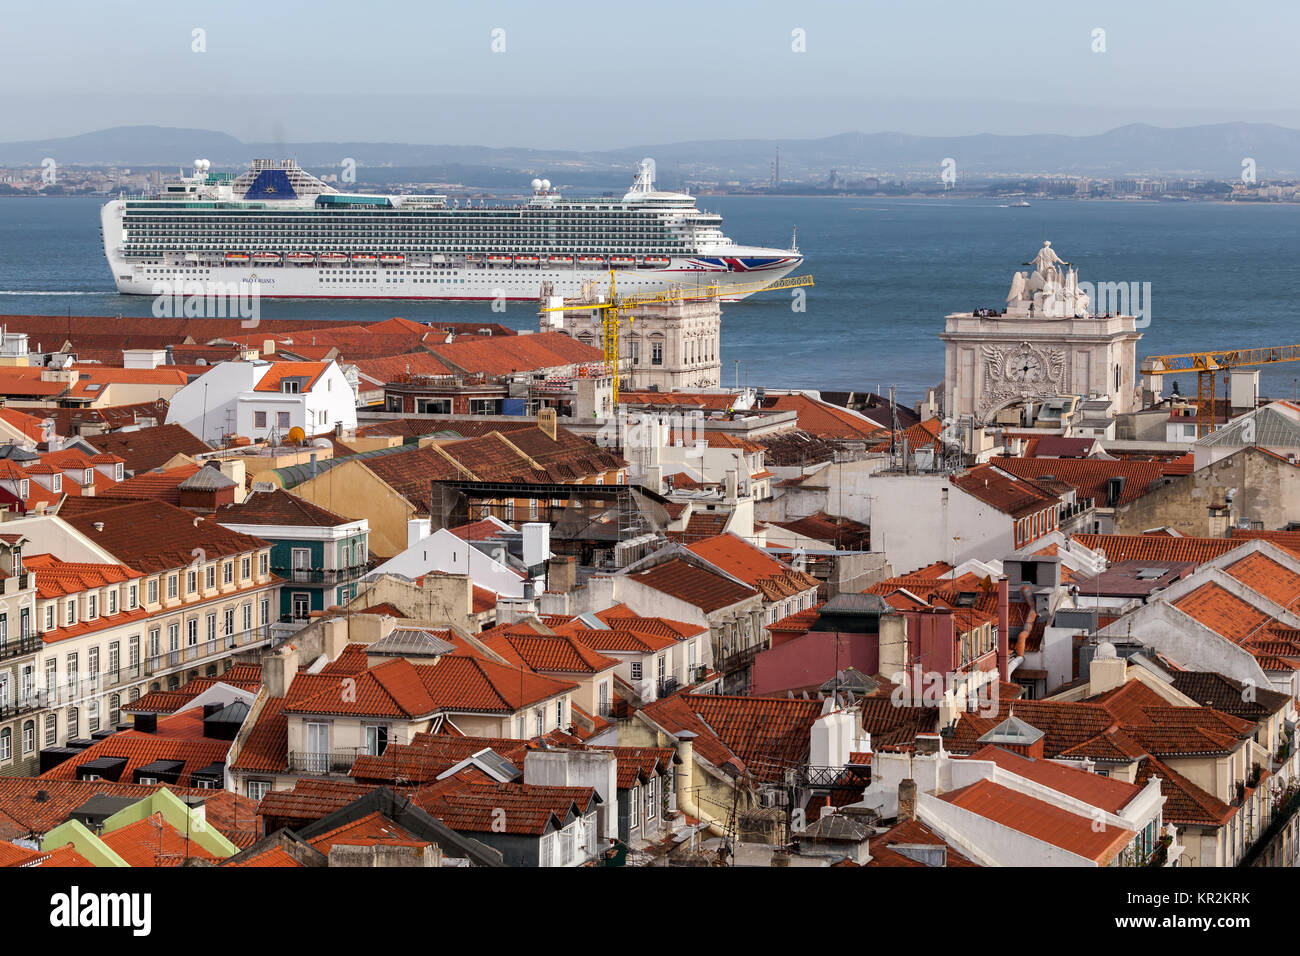 Cruise ship passing Lisbon, Portugal. View from the Santa Justa Lift. - Stock Image